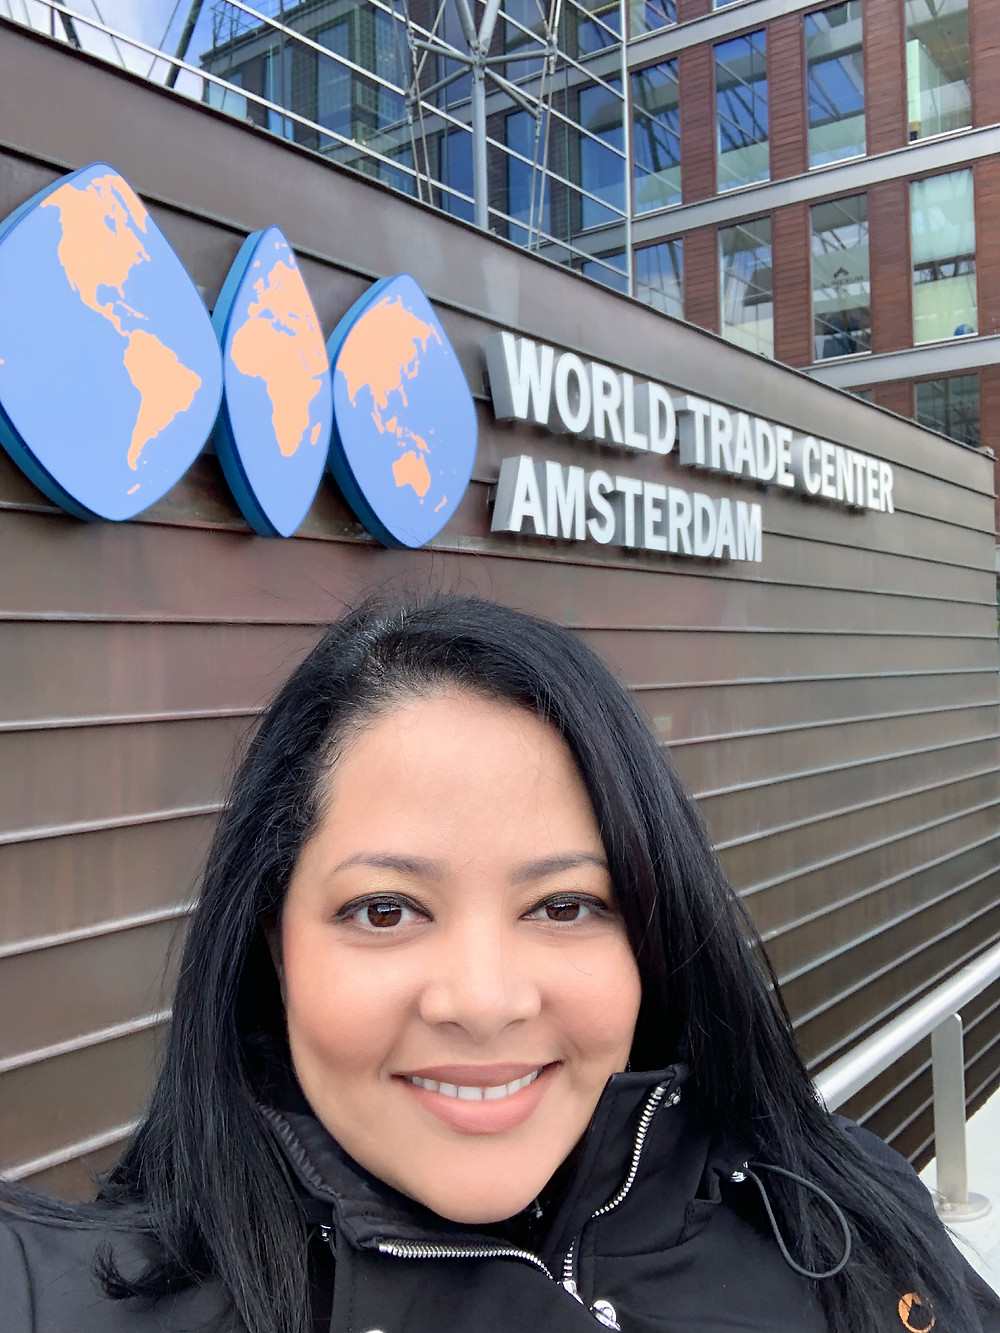 World Trade Center in Amsterdam